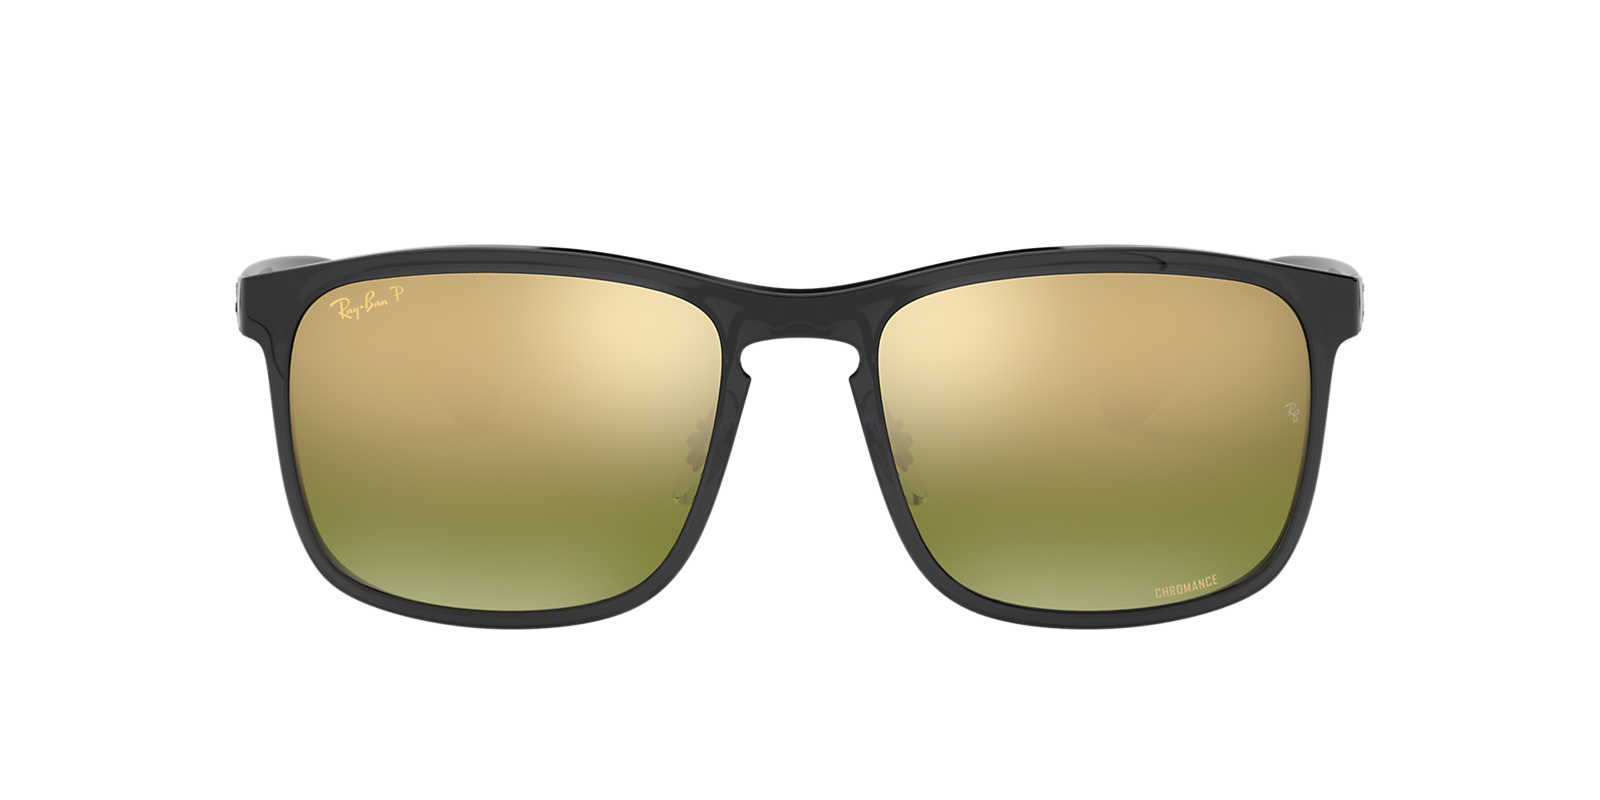 Ray ban sunglasses sale new zealand - Ray Ban Silver Rb4264 Gold Polarised Lenses 58mm